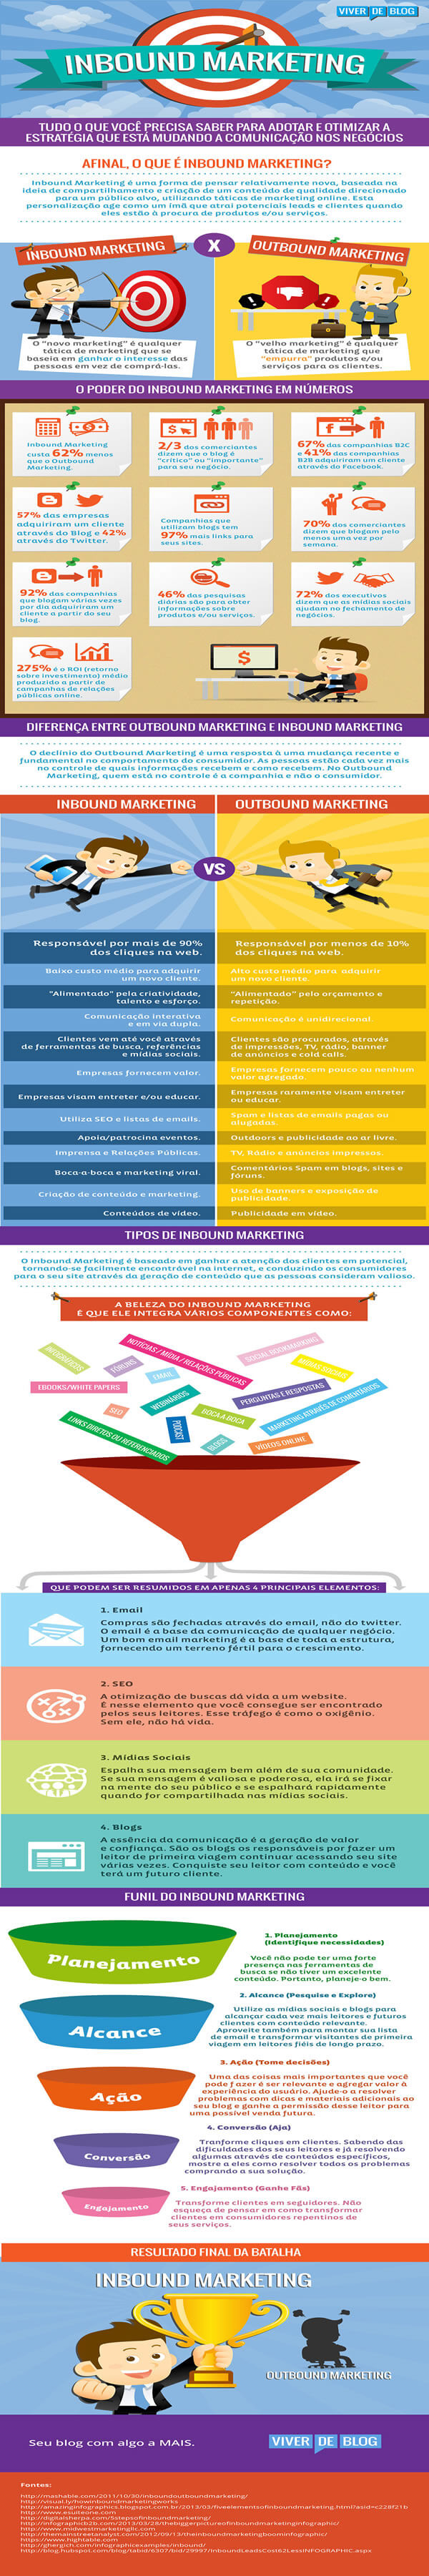 infografico-inbound-marketing